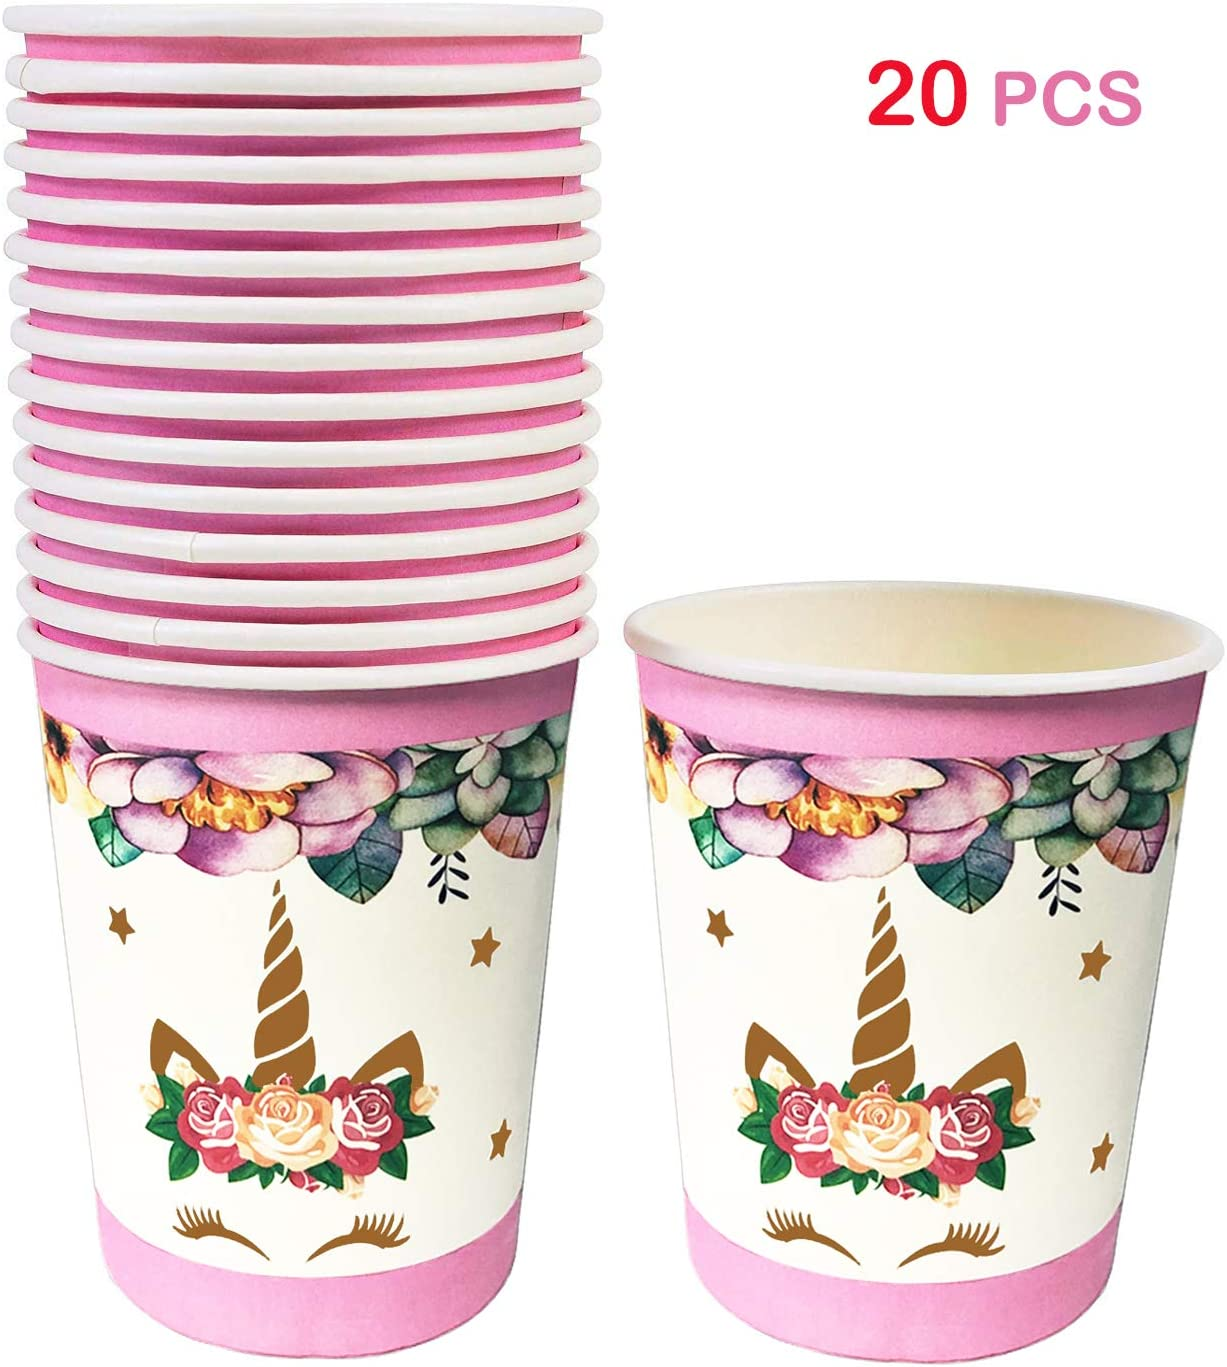 Unicorn Paper Cups for 20 Guests